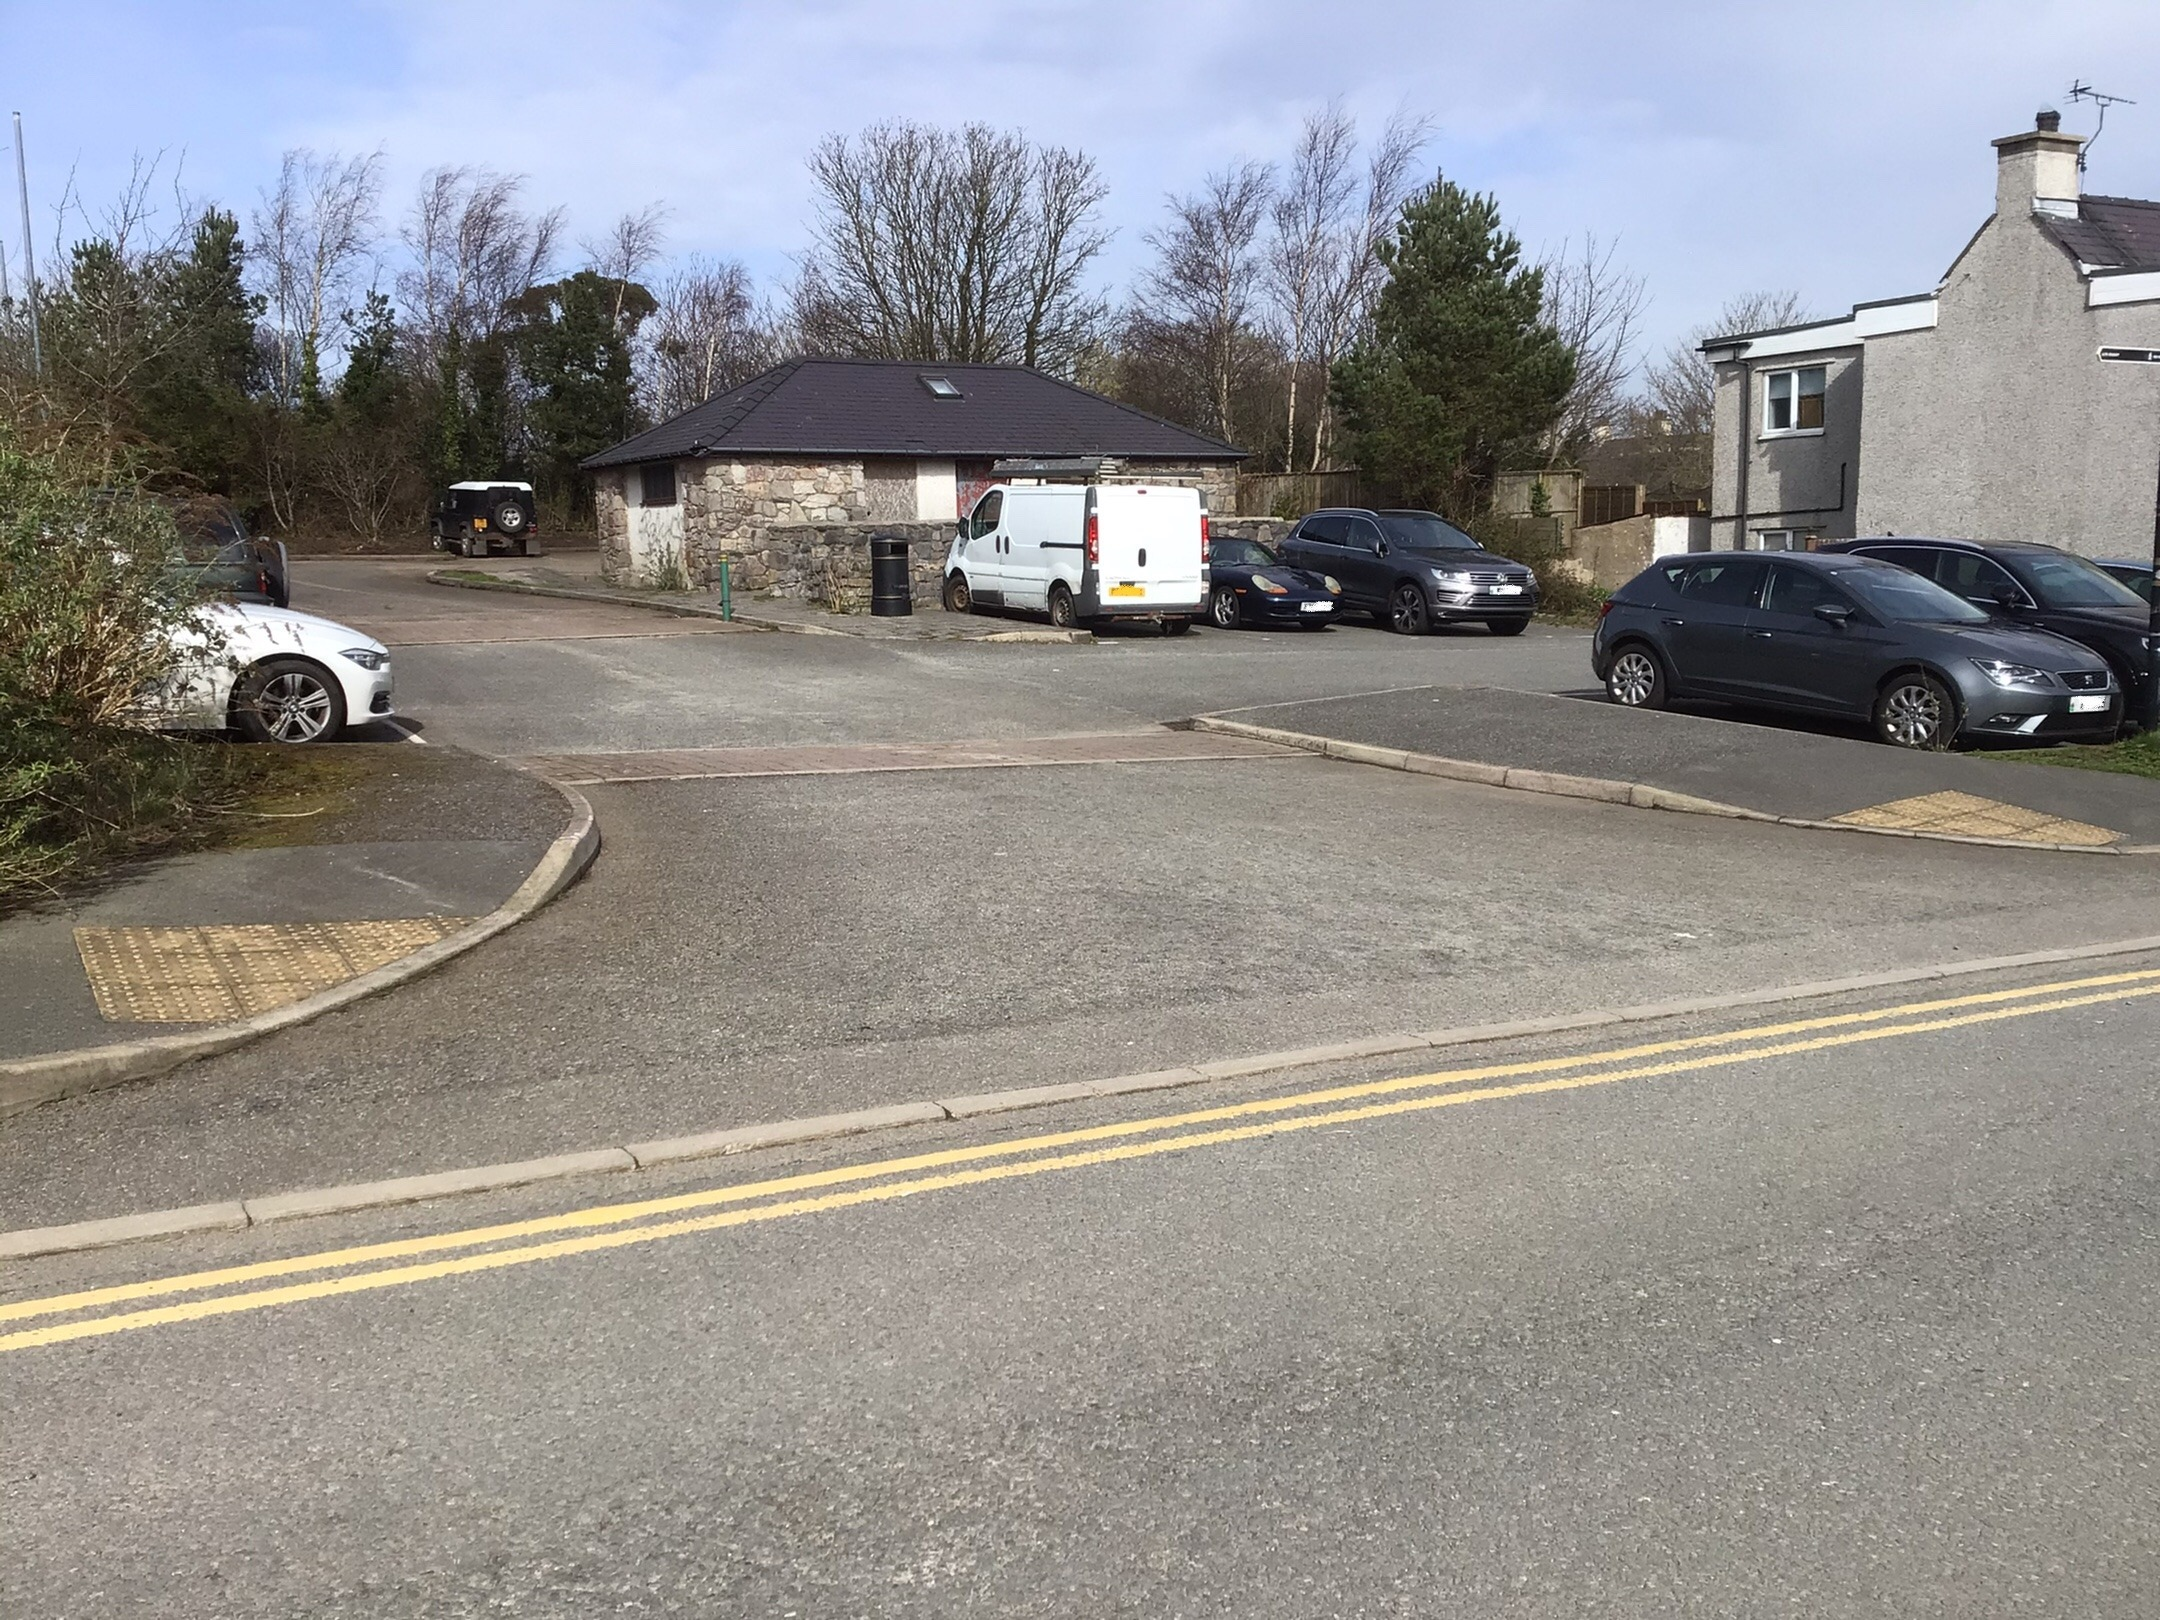 The former public toilets and car park, which Anglesey Council says will be available for locals once the new experimental yellow lines are in place. Taken by reporter, free to use by all LDRS partners.